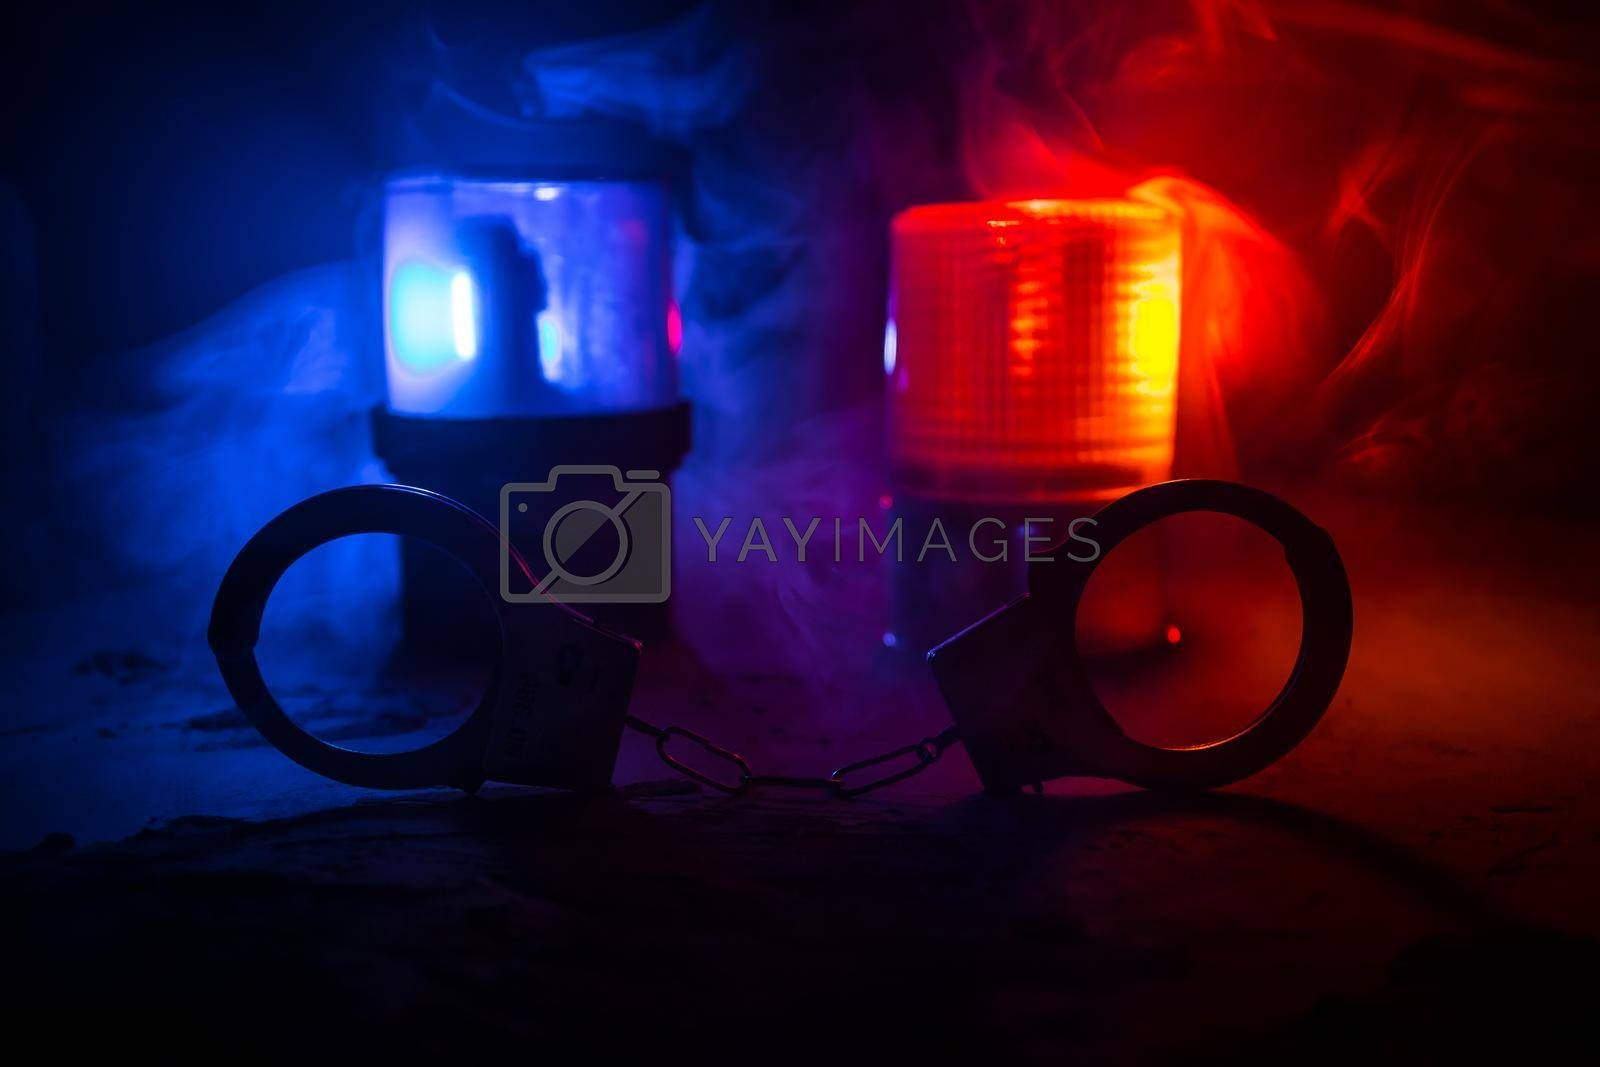 Police raid at night and you are under arrest concept. Silhouette of handcuffs with flashing red and blue police lights at foggy background. Selective focus